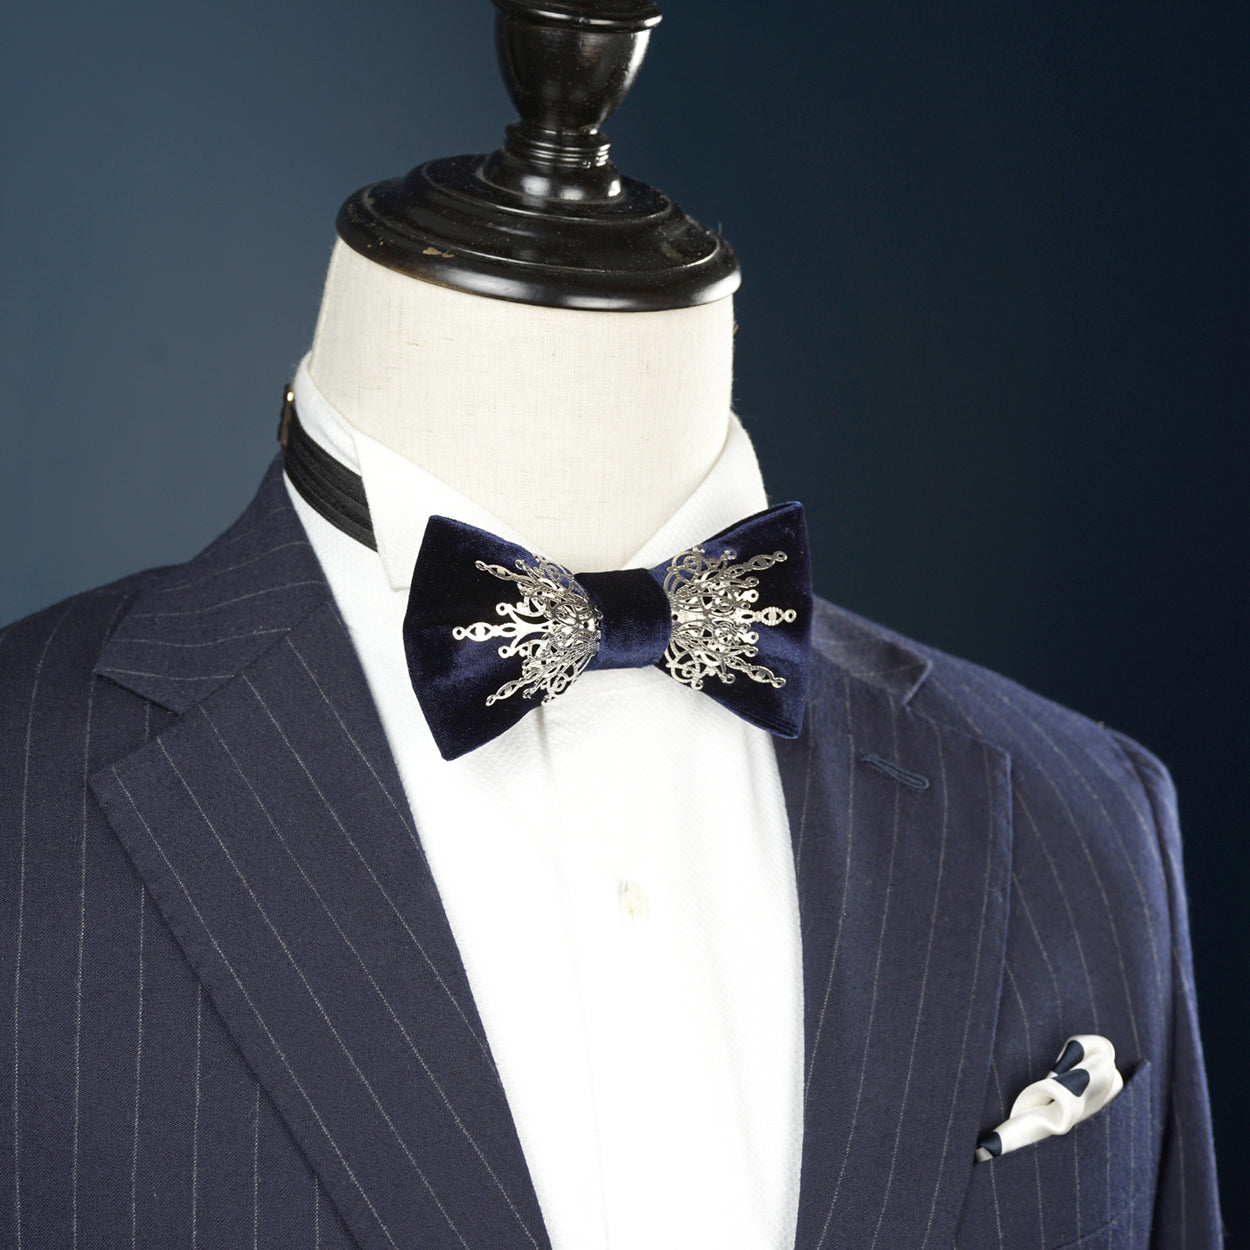 PRE-TIED BOWTIE COLLECTION